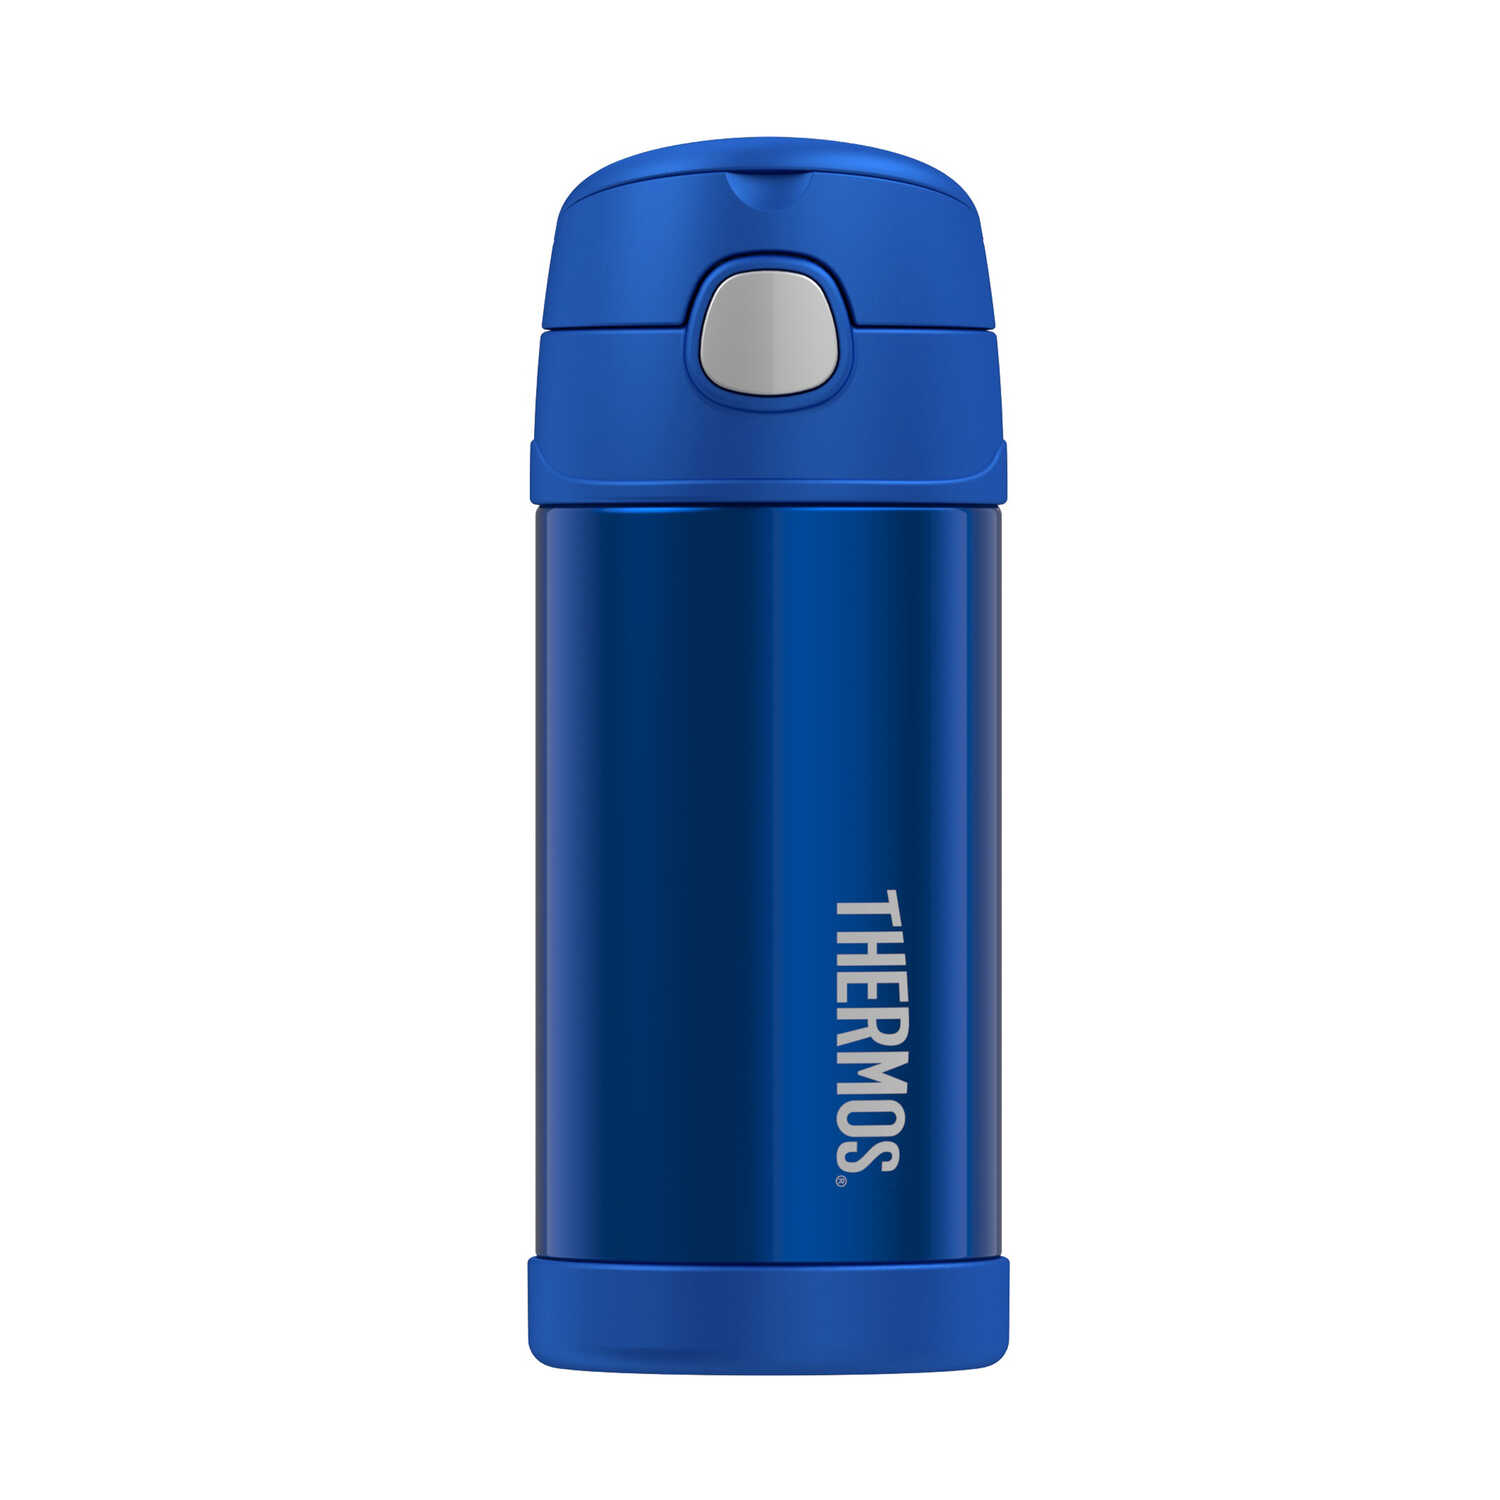 Thermos  FUNtainer  Blue  Stainless Steel  Vacuum Insulated  Thermos Bottle  BPA Free 12 oz.